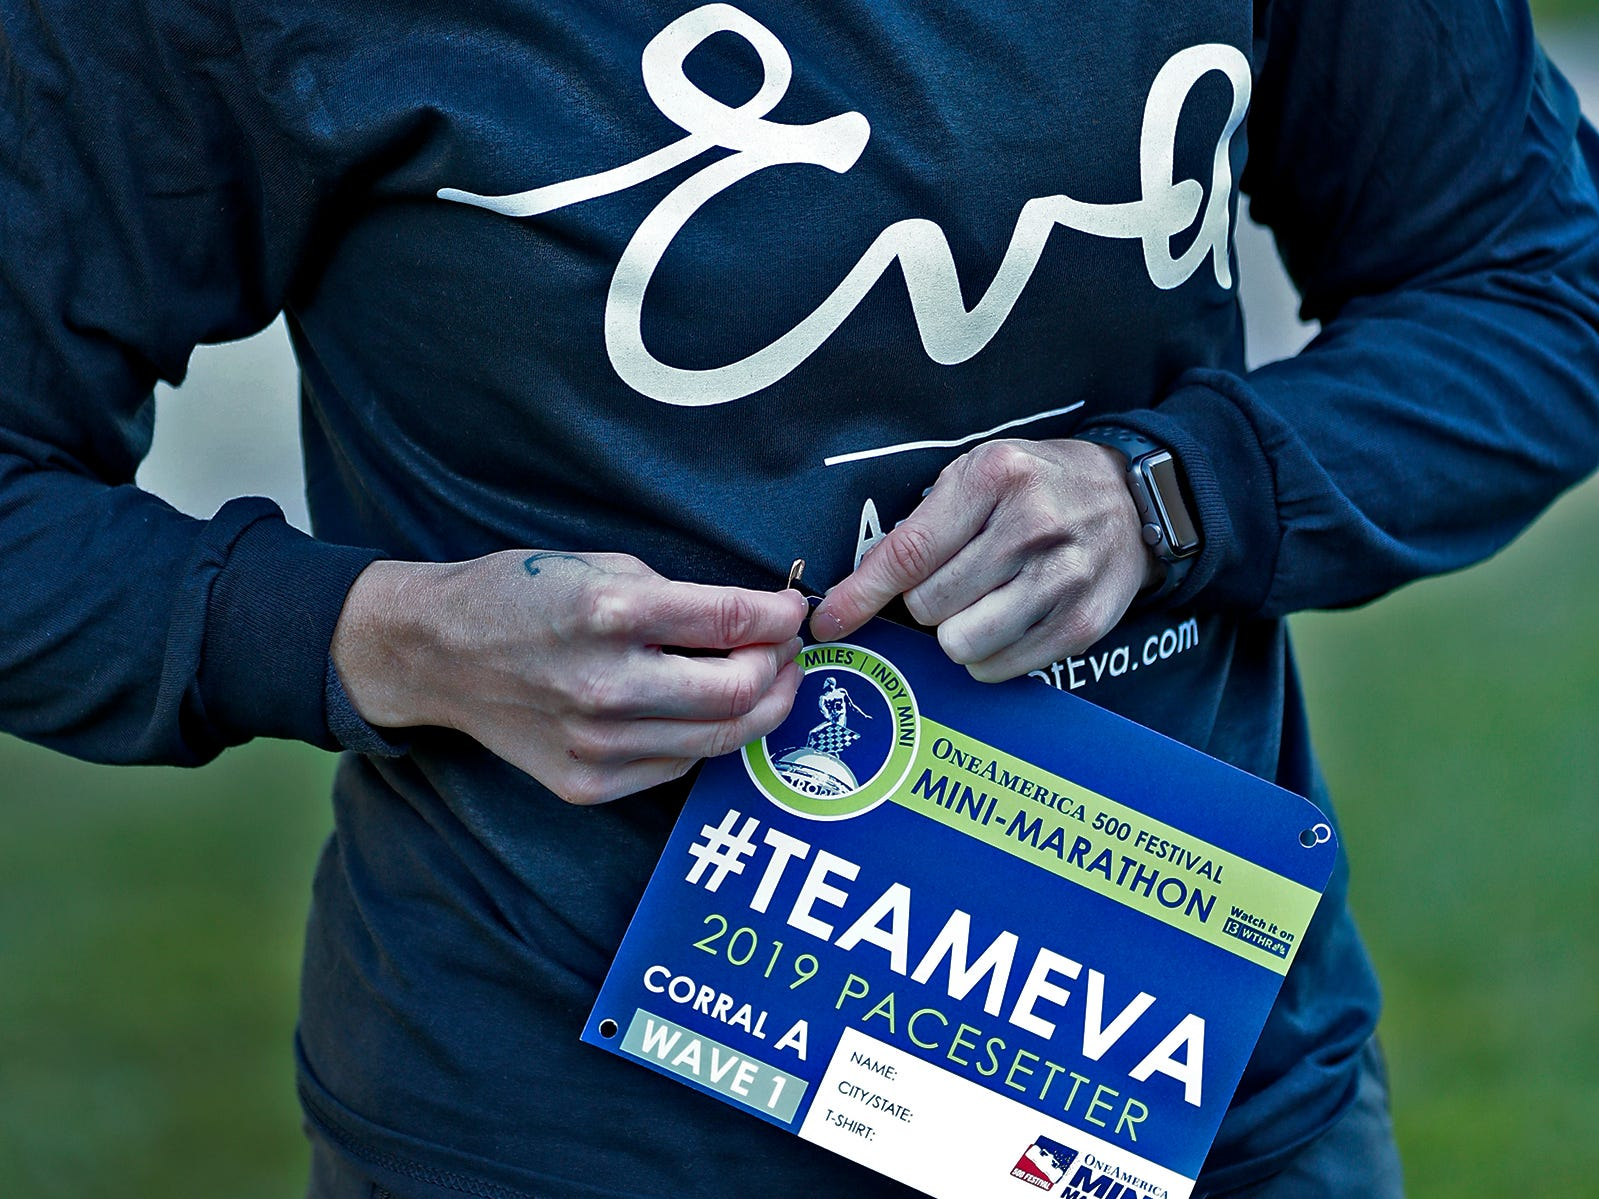 Mika Brown puts on her Team Eva bib to run the first leg, Wednesday, Oct. 24, 2018, of the pace-setting run for the 2019 OneAmerica 500 Festival Mini-Marathon.  The 500 Festival will donate $1 to the CANDLES Holocaust Museum in Terre Haute for every mini-marathon participant who finishes the 2019 race in a better time than Team Eva.  Holocaust survivor Eva Kor joined the fun at the Indianapolis Motor Speedway's Yard of Bricks and ran the very last part of the race.